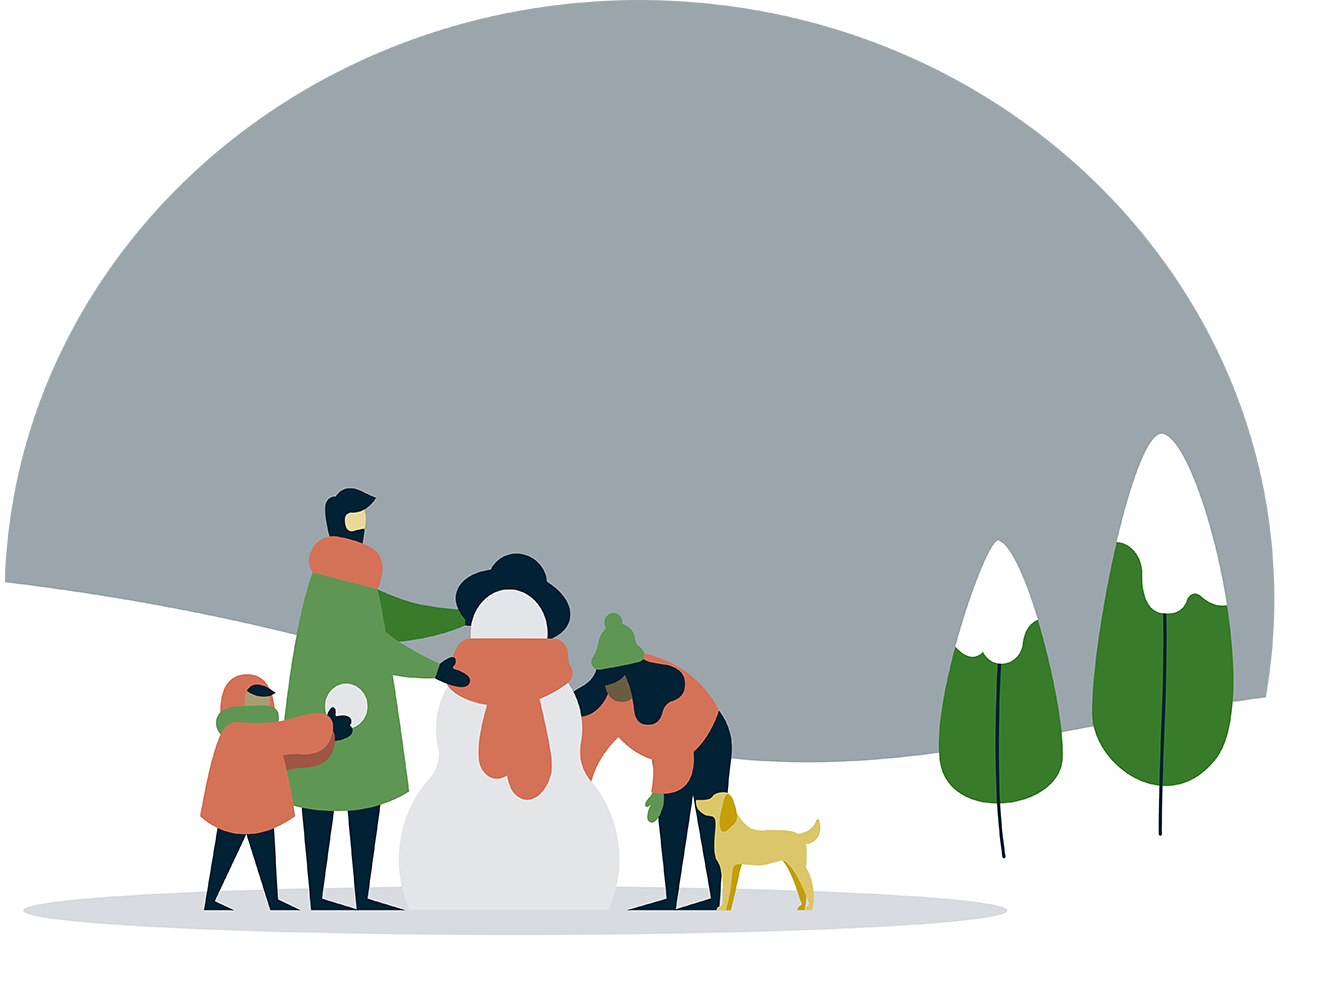 Illustration of people playing in snow